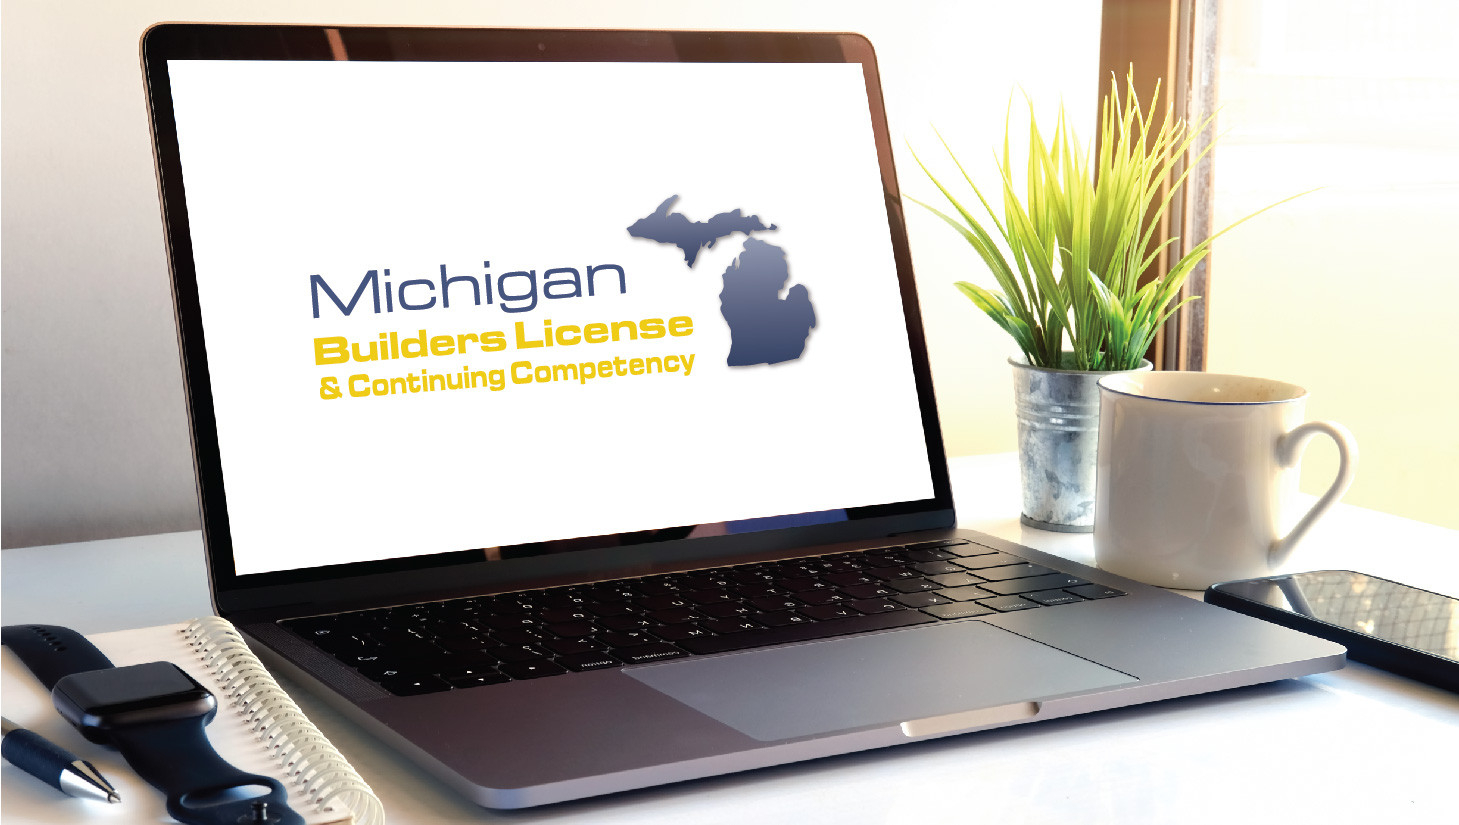 Michigan Builders License Cram Course Online